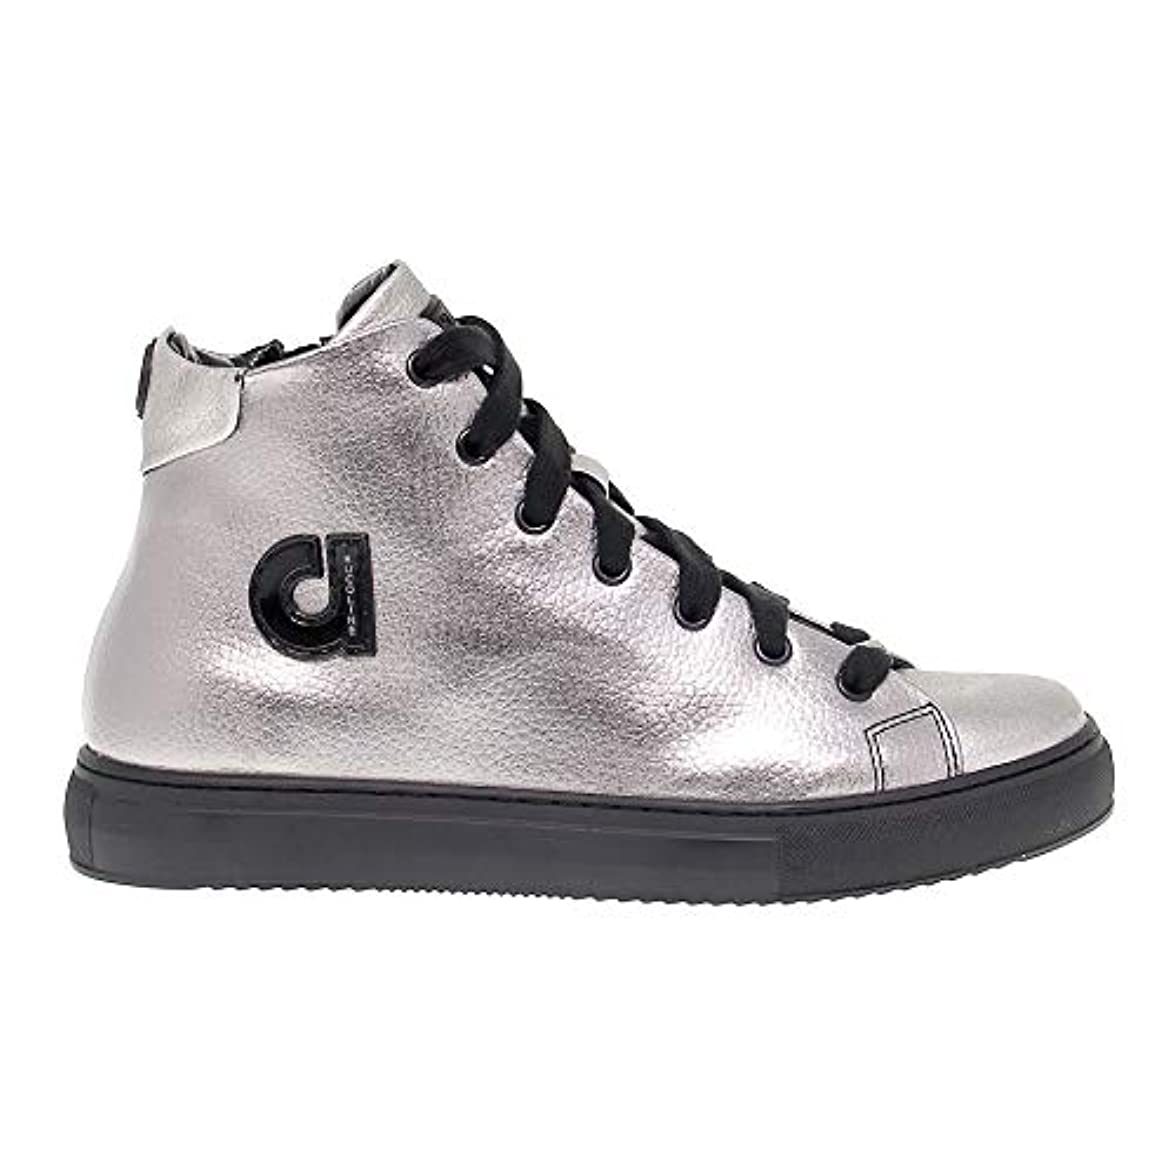 Ruco Line Hi Top Sneakers Donna Ruco2815 Pelle Argento